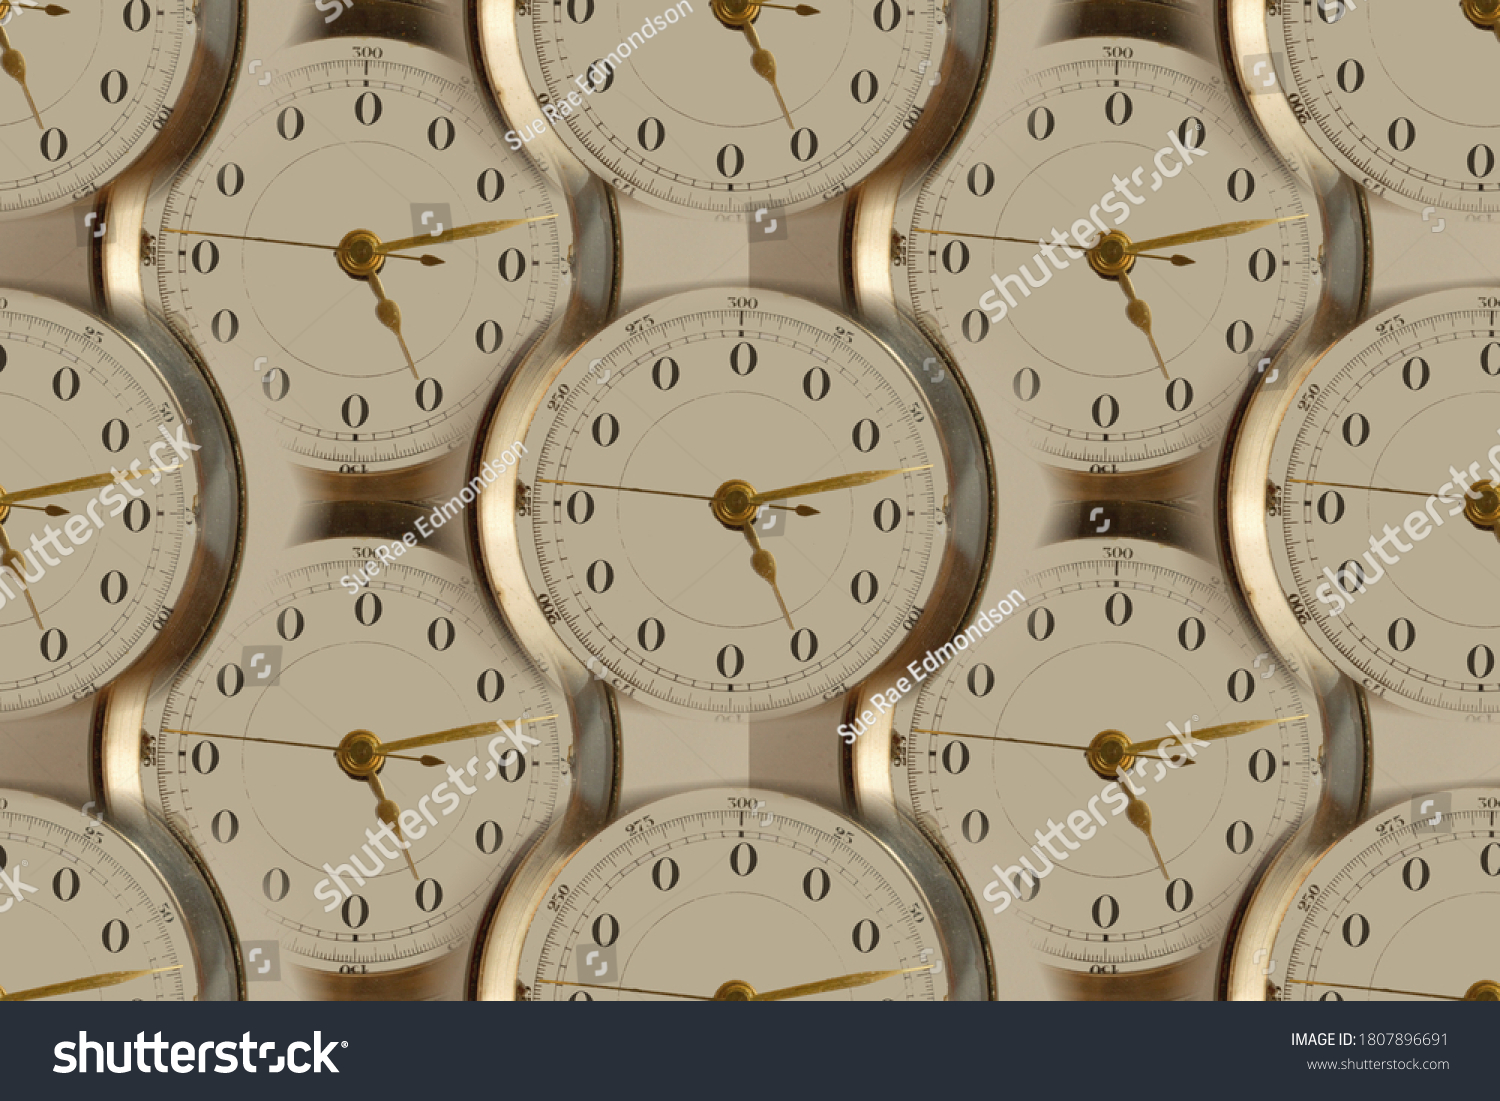 stock-photo-no-time-clock-faces-abstract